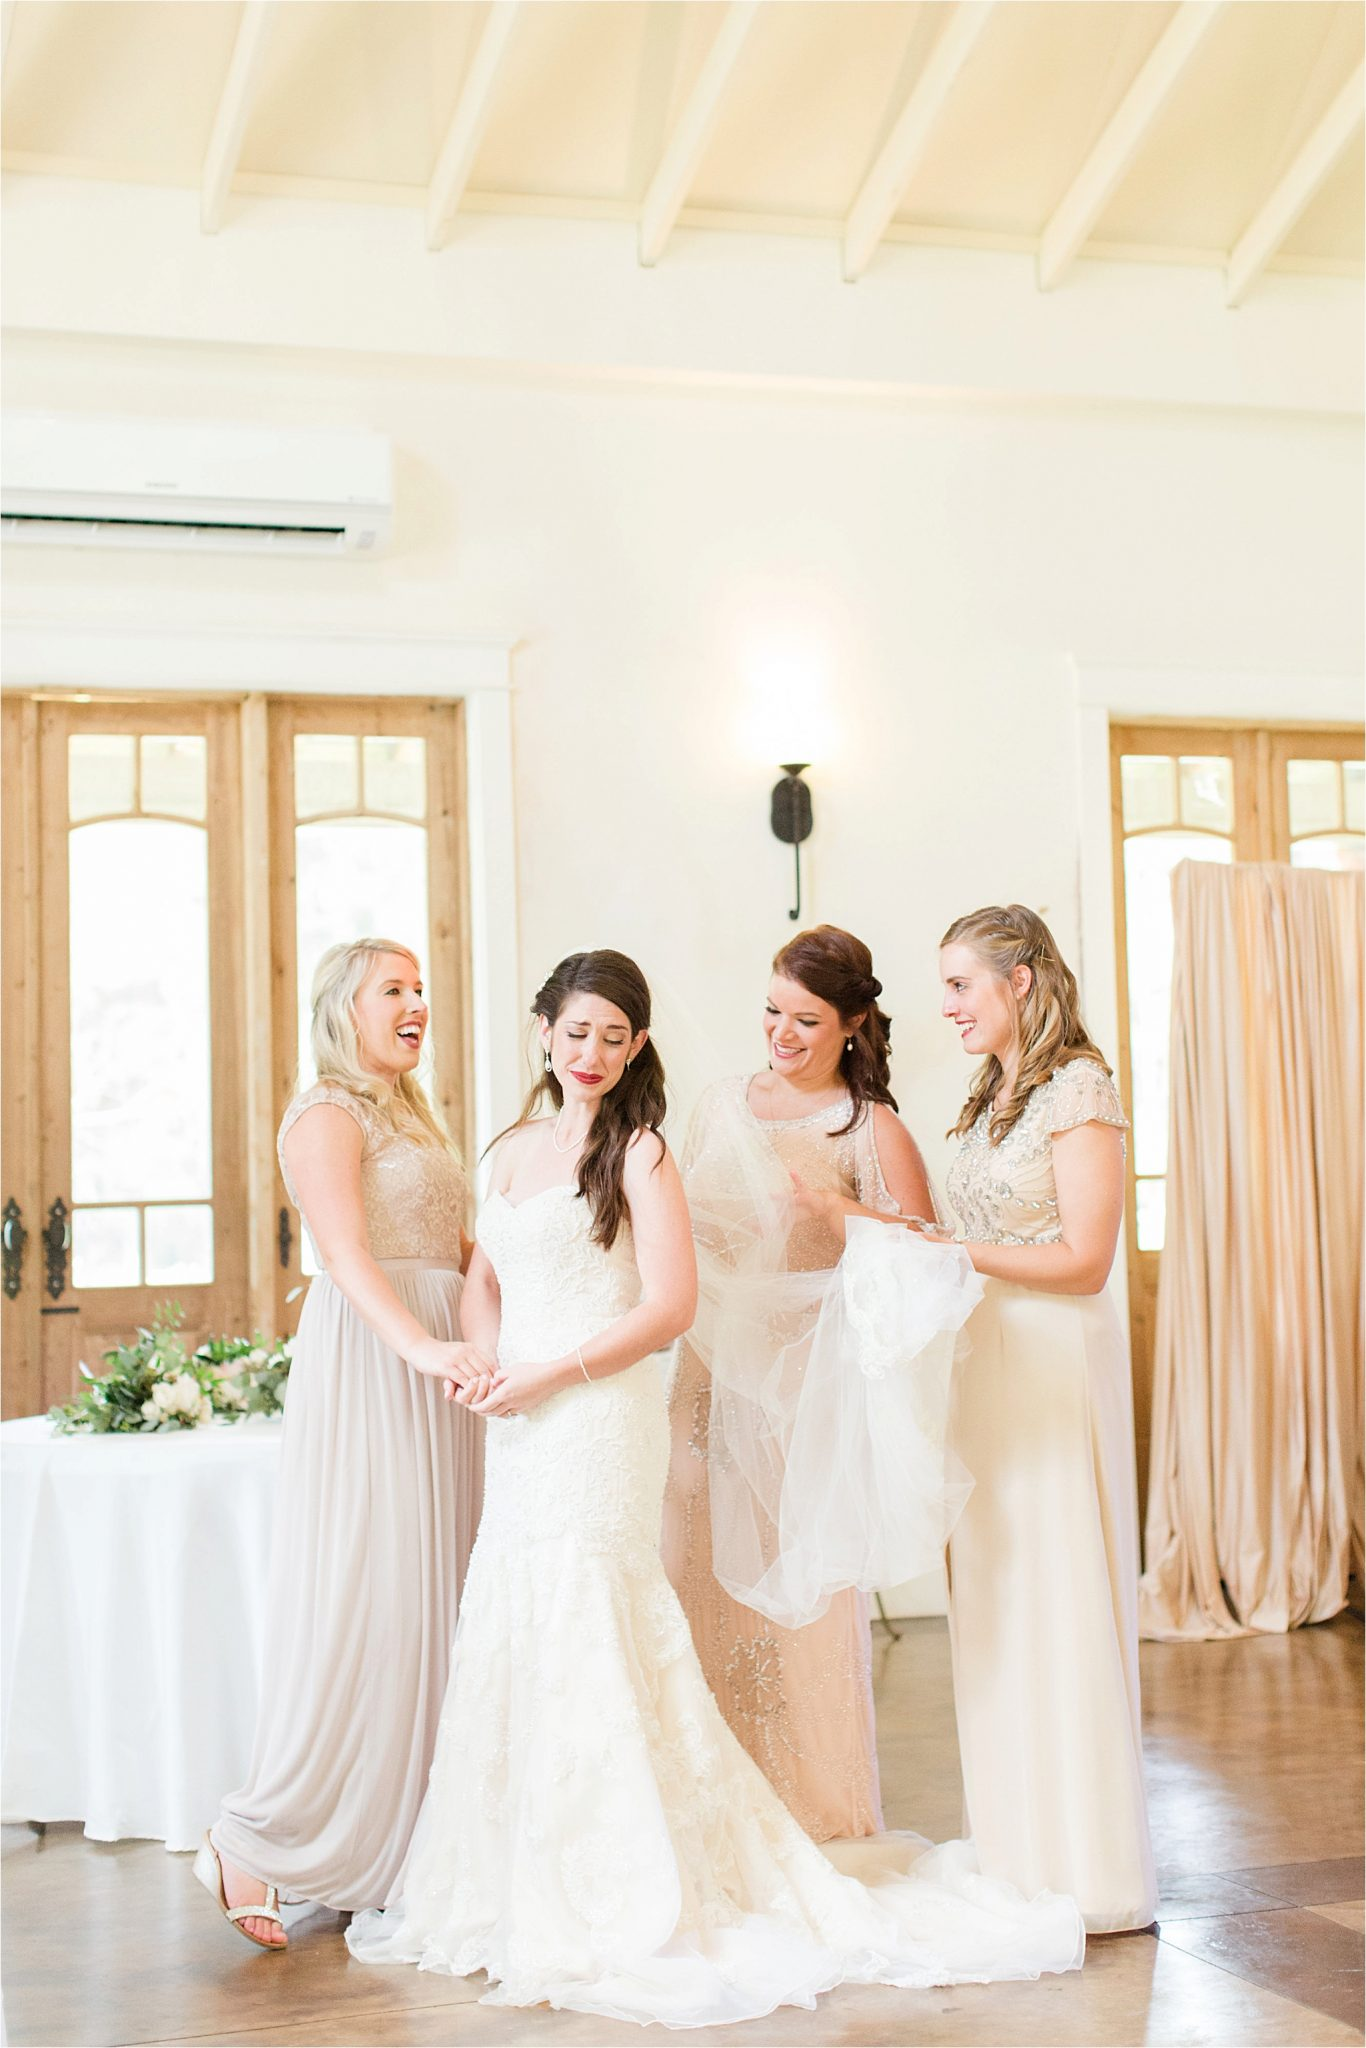 Bridesmaids-neutrals-champagnes-dresses-bride-brooch-hair-piece